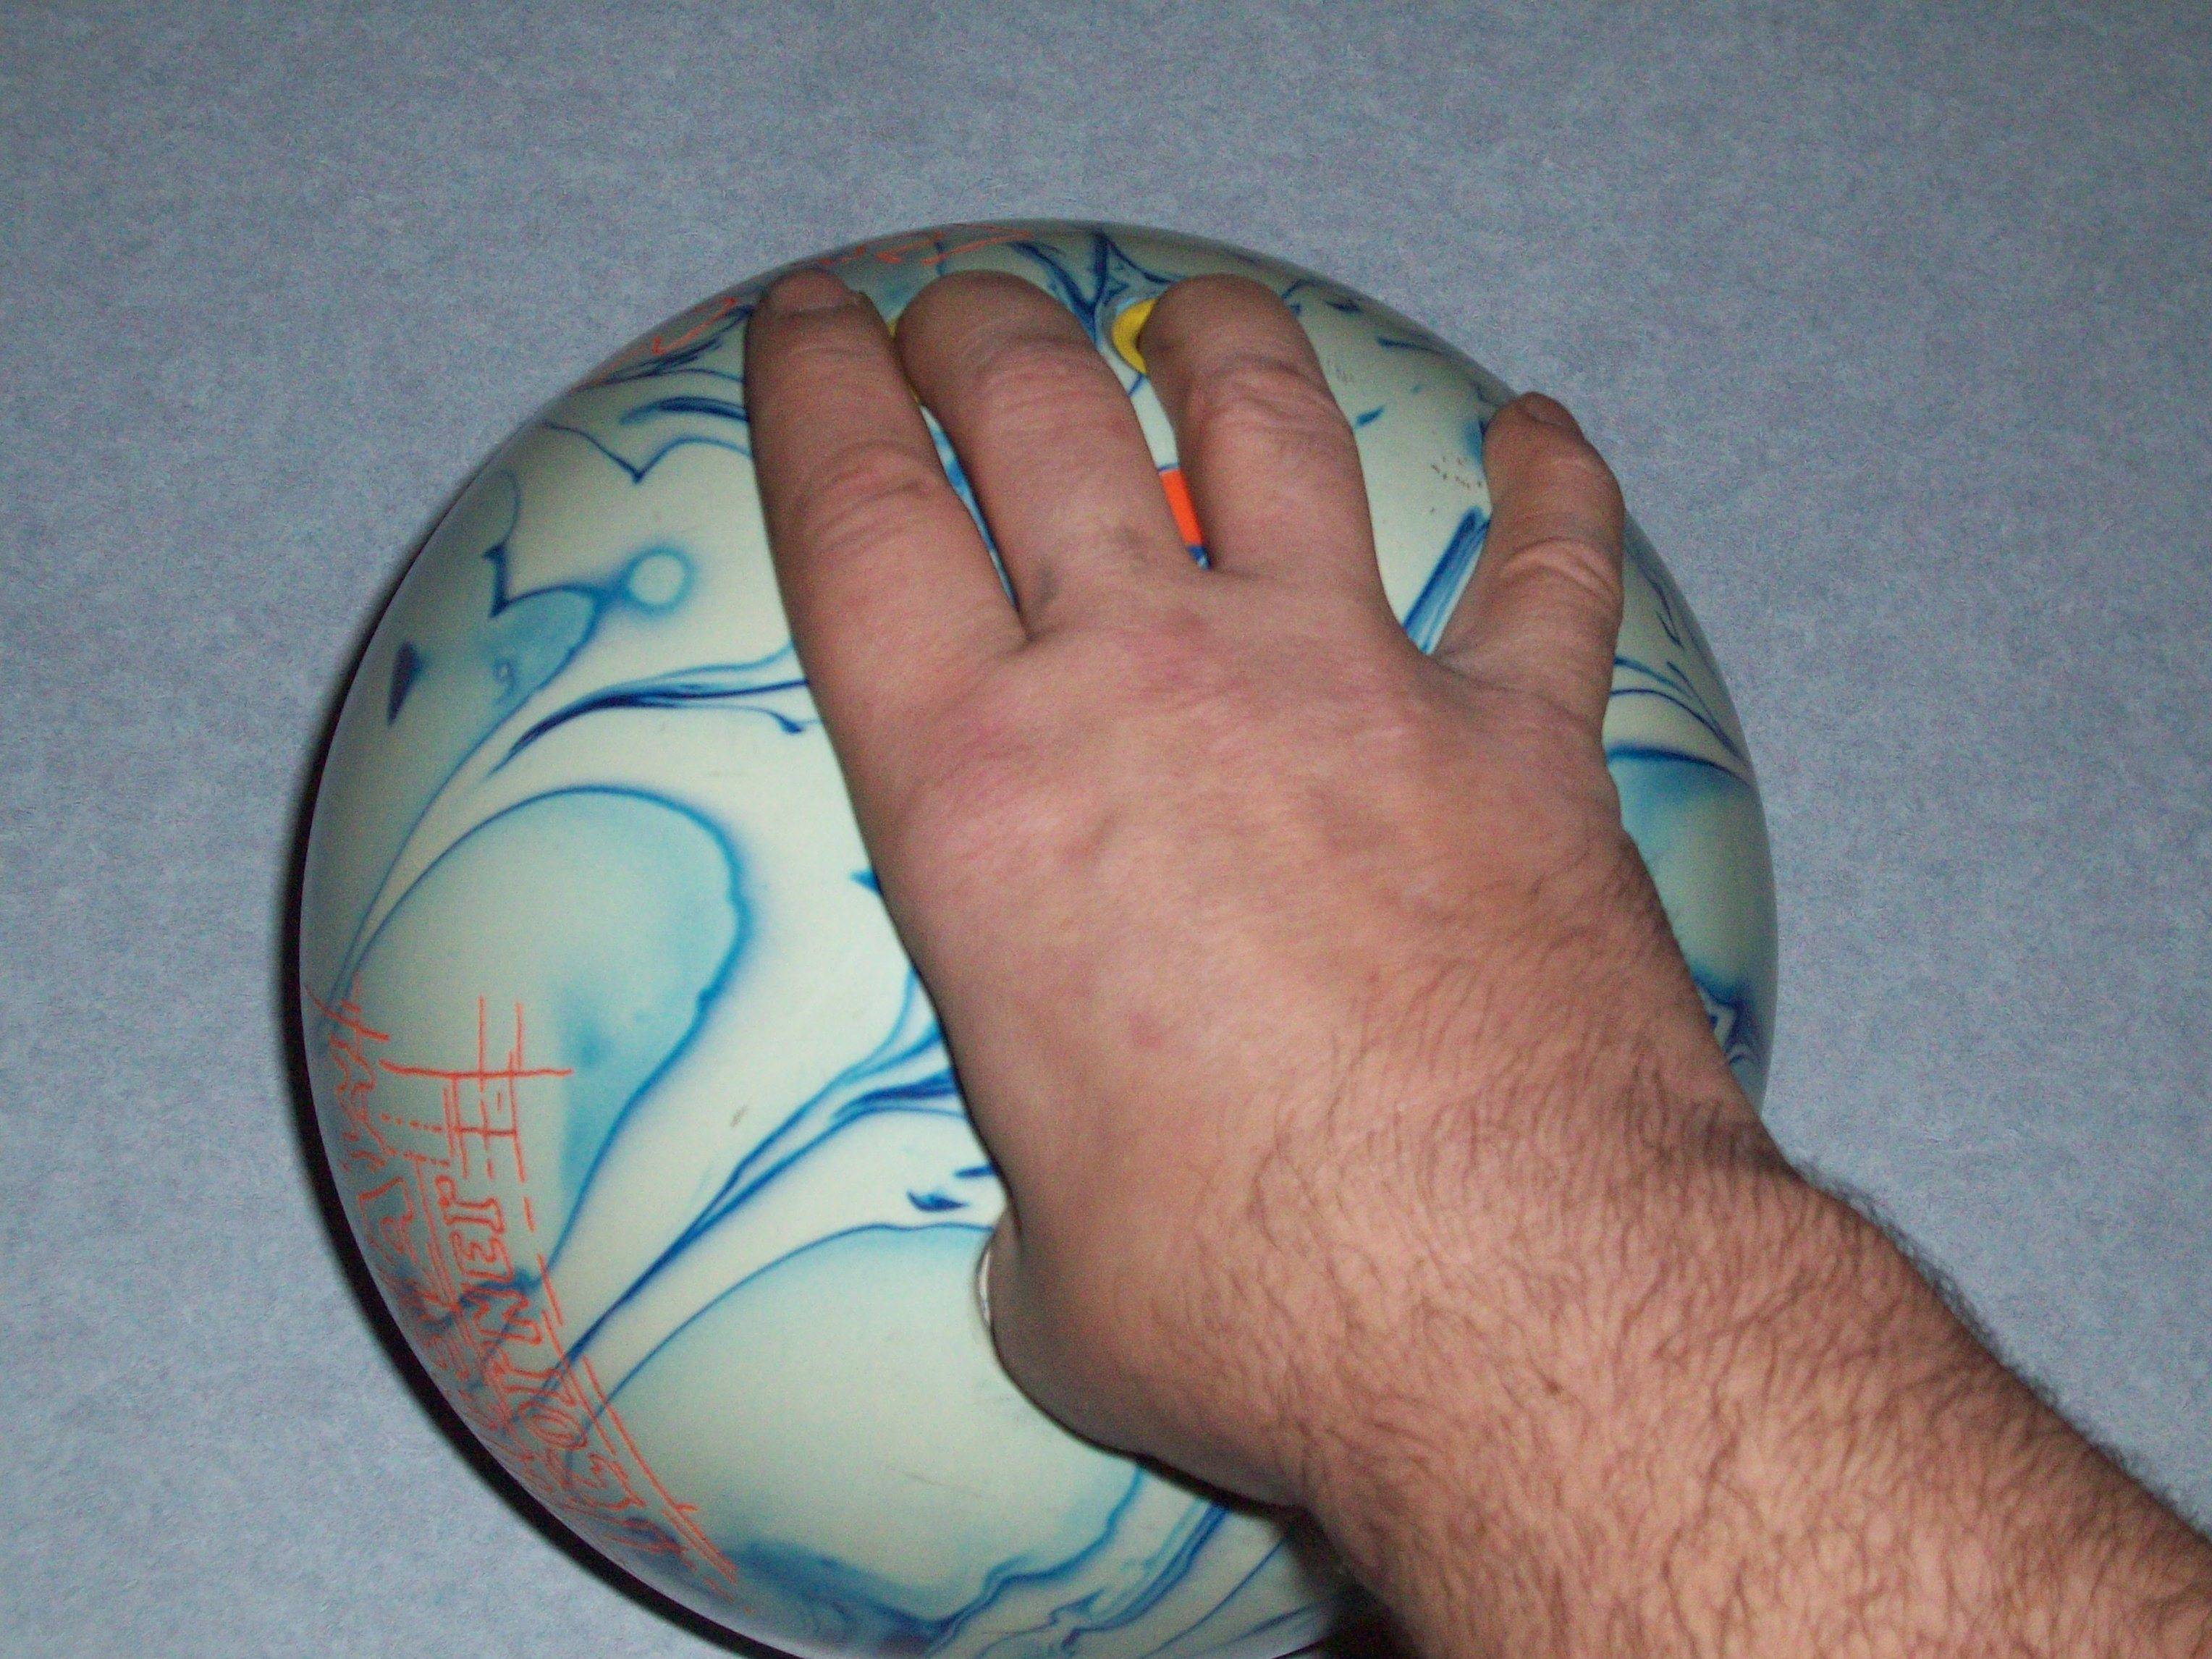 Bowling Finger Positions, Wide Pinkie Finger Position, Bowling Wrist Hand Positions,  Hand Position Used In Bowling, Wide Pinkie Finger Position in Bowling, bowling, ball, hand, finger, wrist, positions